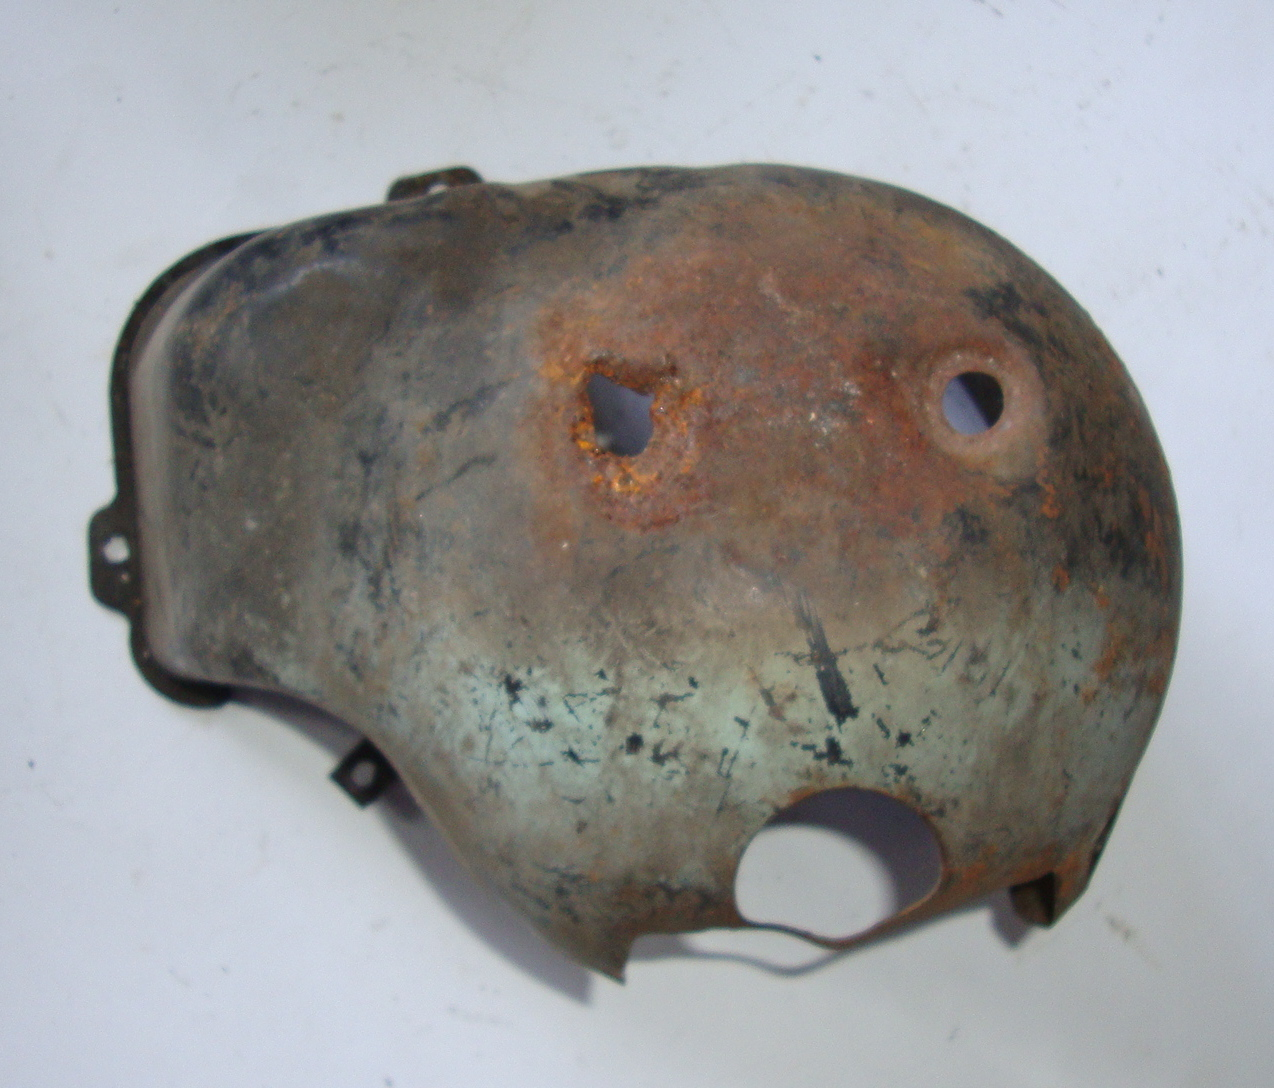 Cylinder cowling, Vespa / Ape, unknown